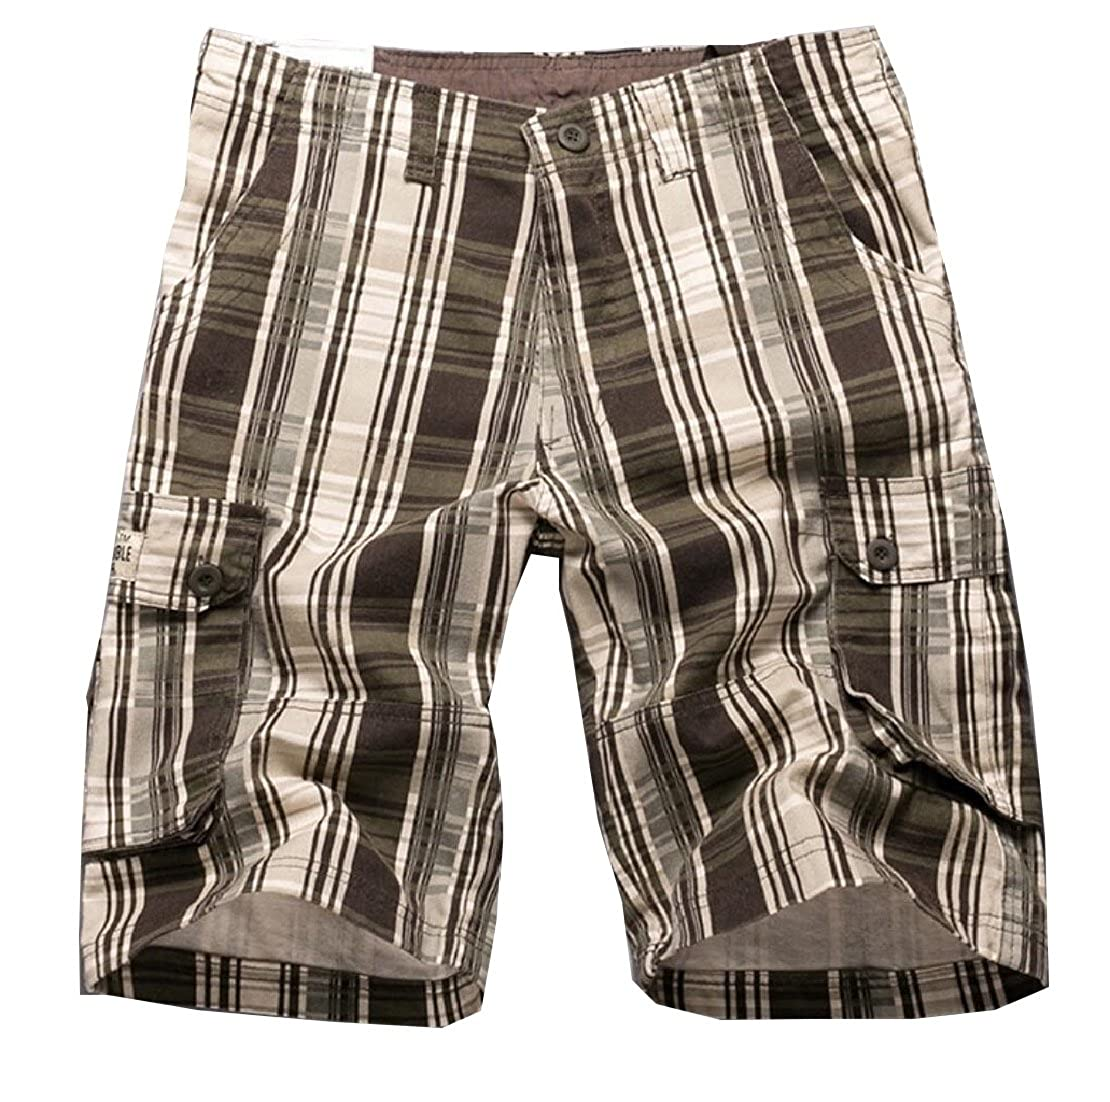 M/&S/&W Mens Loose Summer Fit Multi Pockets Plaid Cargo Shorts